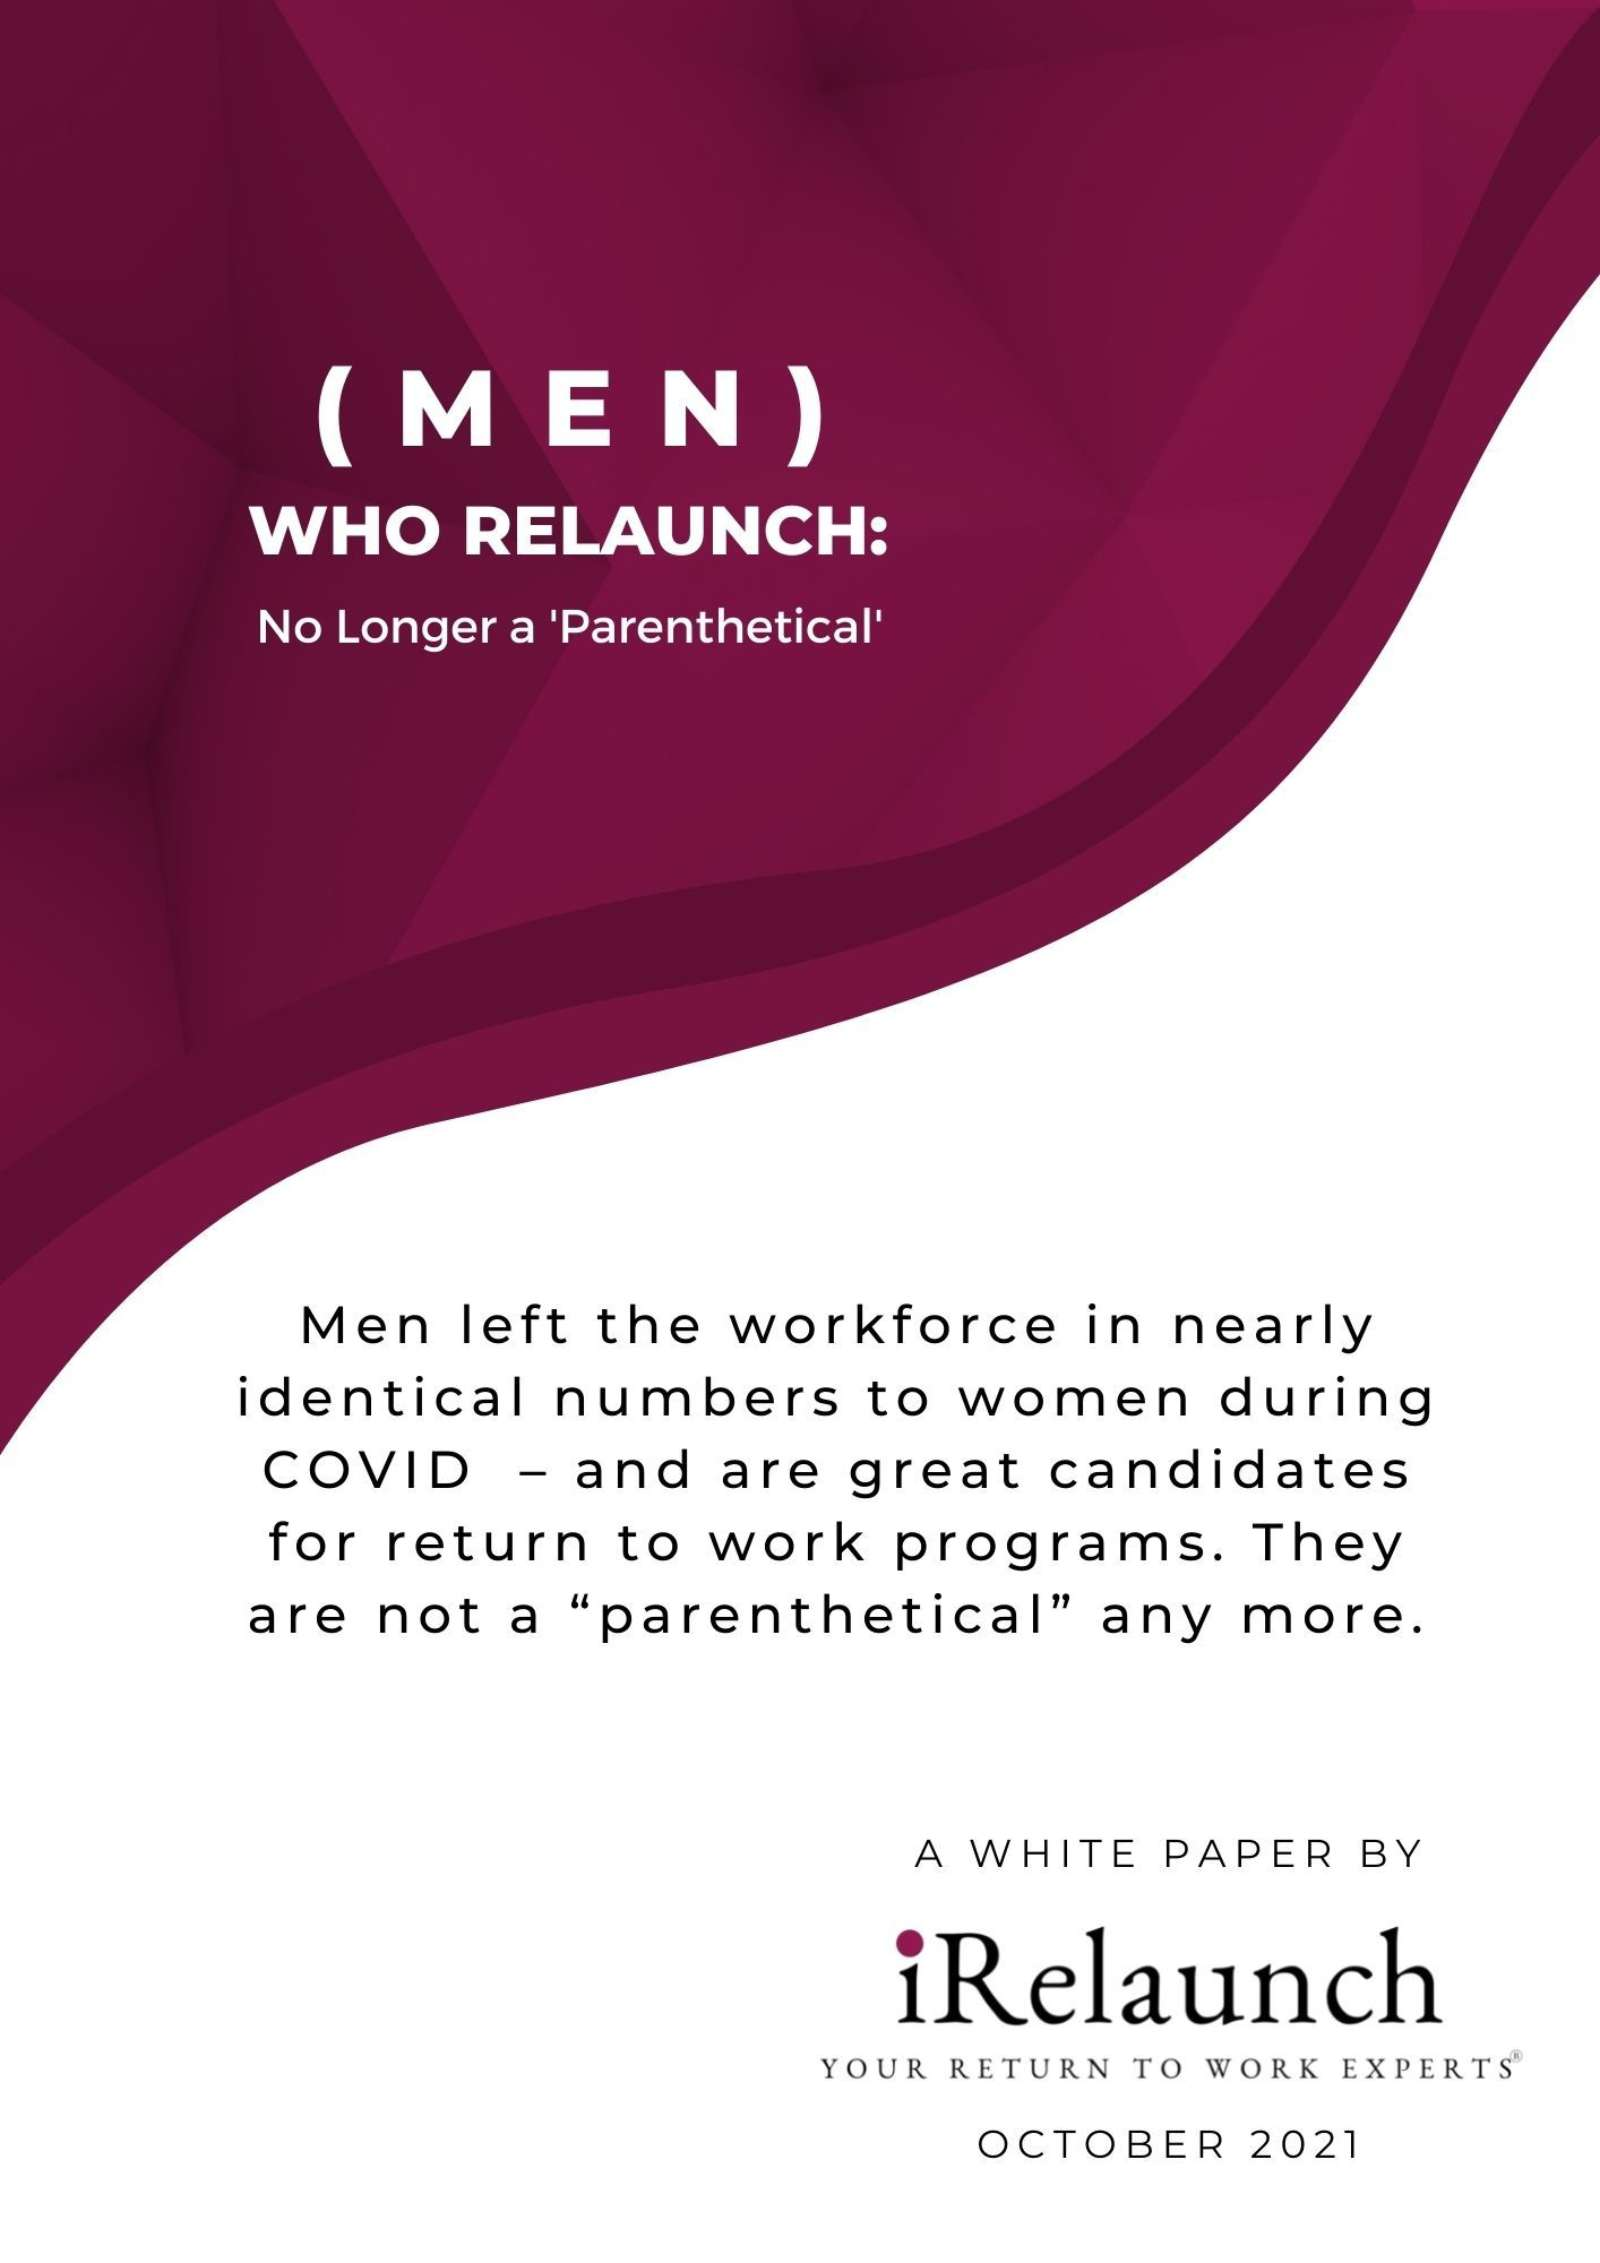 An image of te Cover Page for iRelaunch's October 2021 white paper entitled: (Men) Who Relaunch: No Longer a 'Parenthetical'